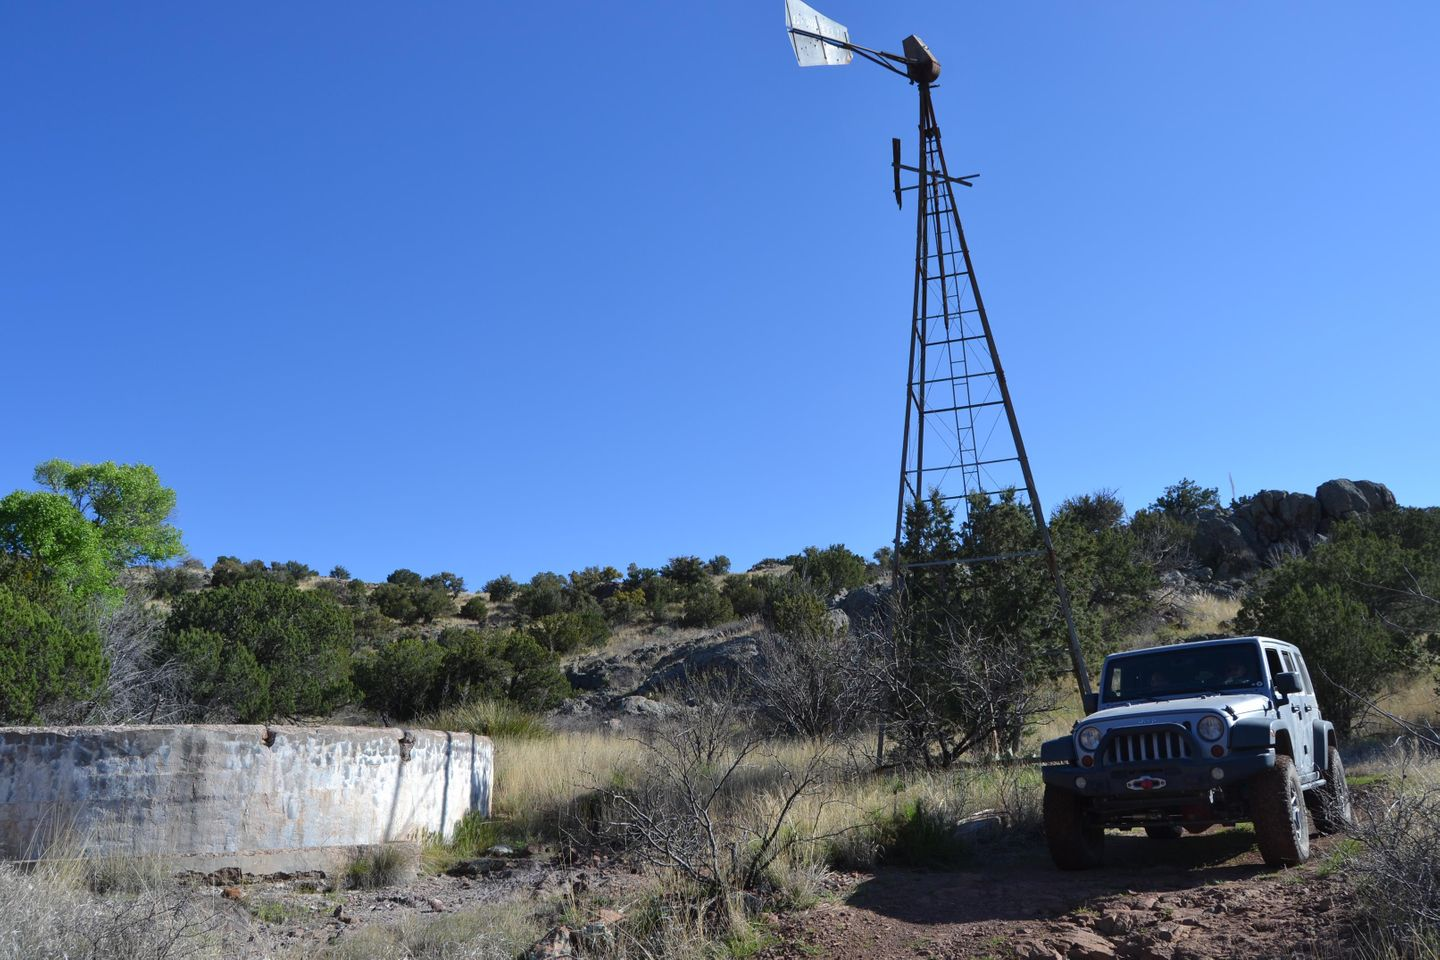 Jackson Cabin/Muleshoe Ranch Road - Waypoint 16: Water Tank & Decommissioned Windmill